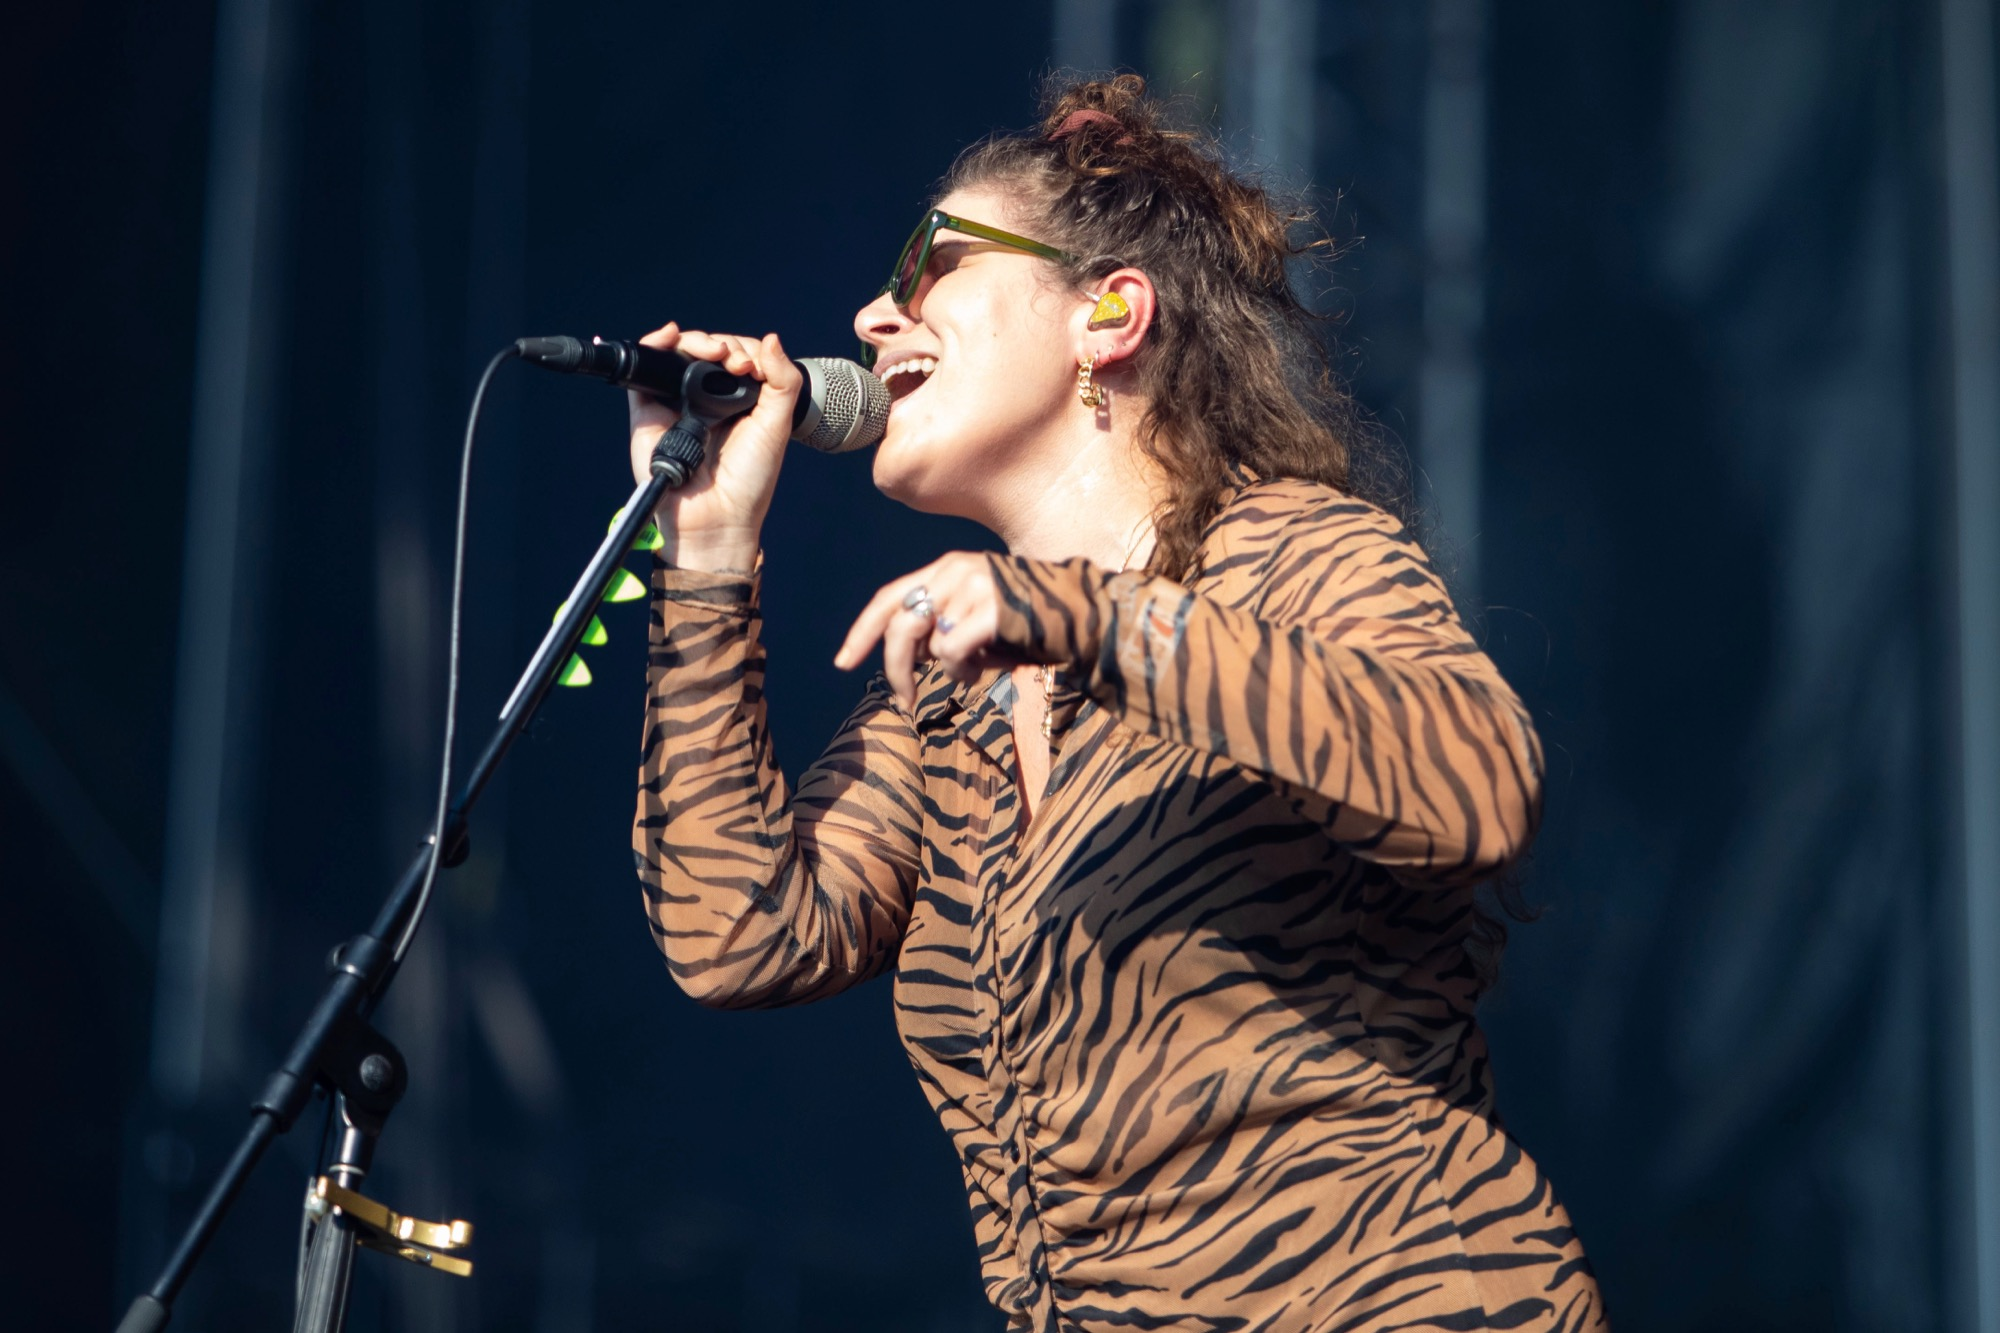 Best Coast performs at Riot Fest in Chicago on Sept. 18, 2021.